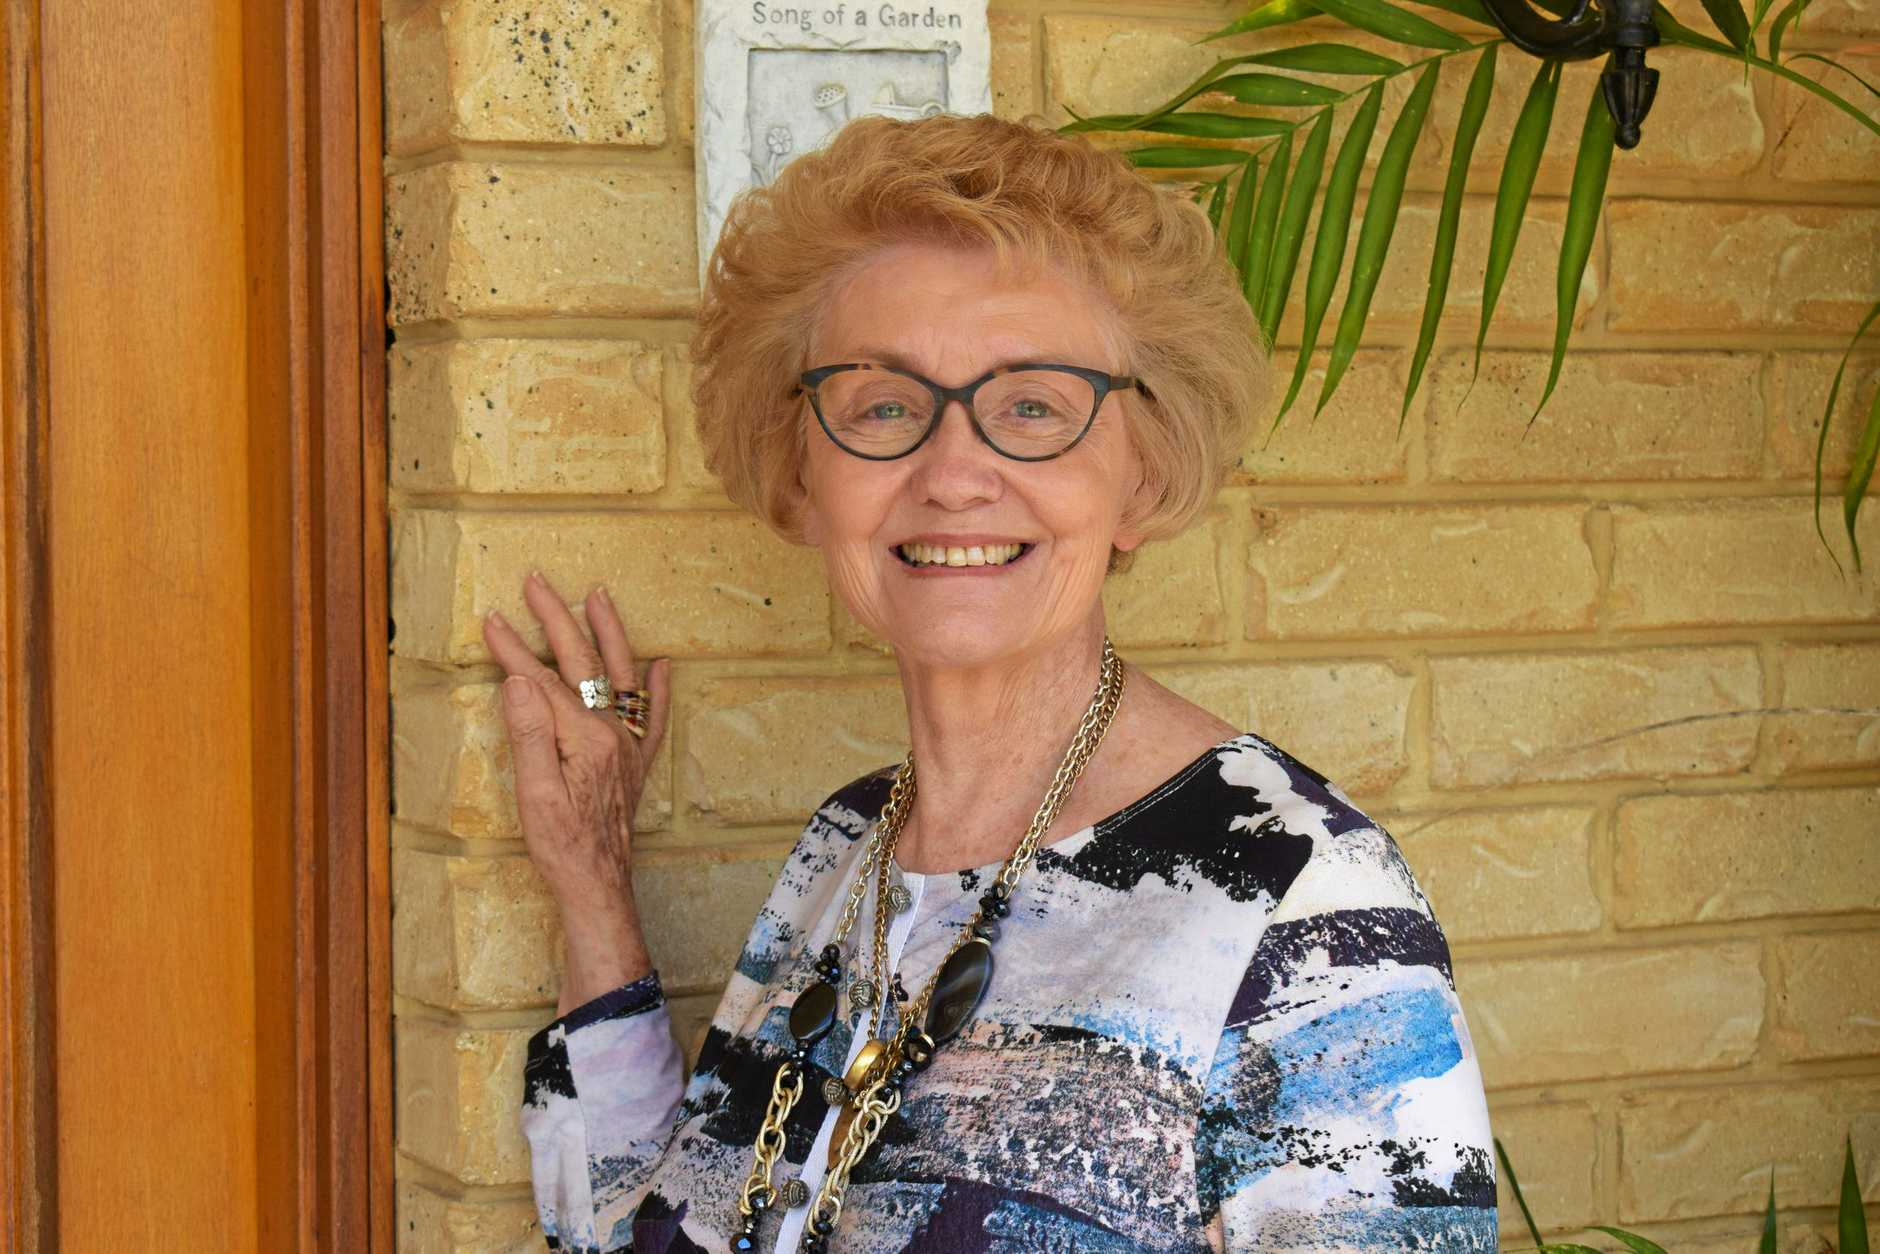 Thelma Reisenleiter has been an important part of the Gympie Community for the past five decades.